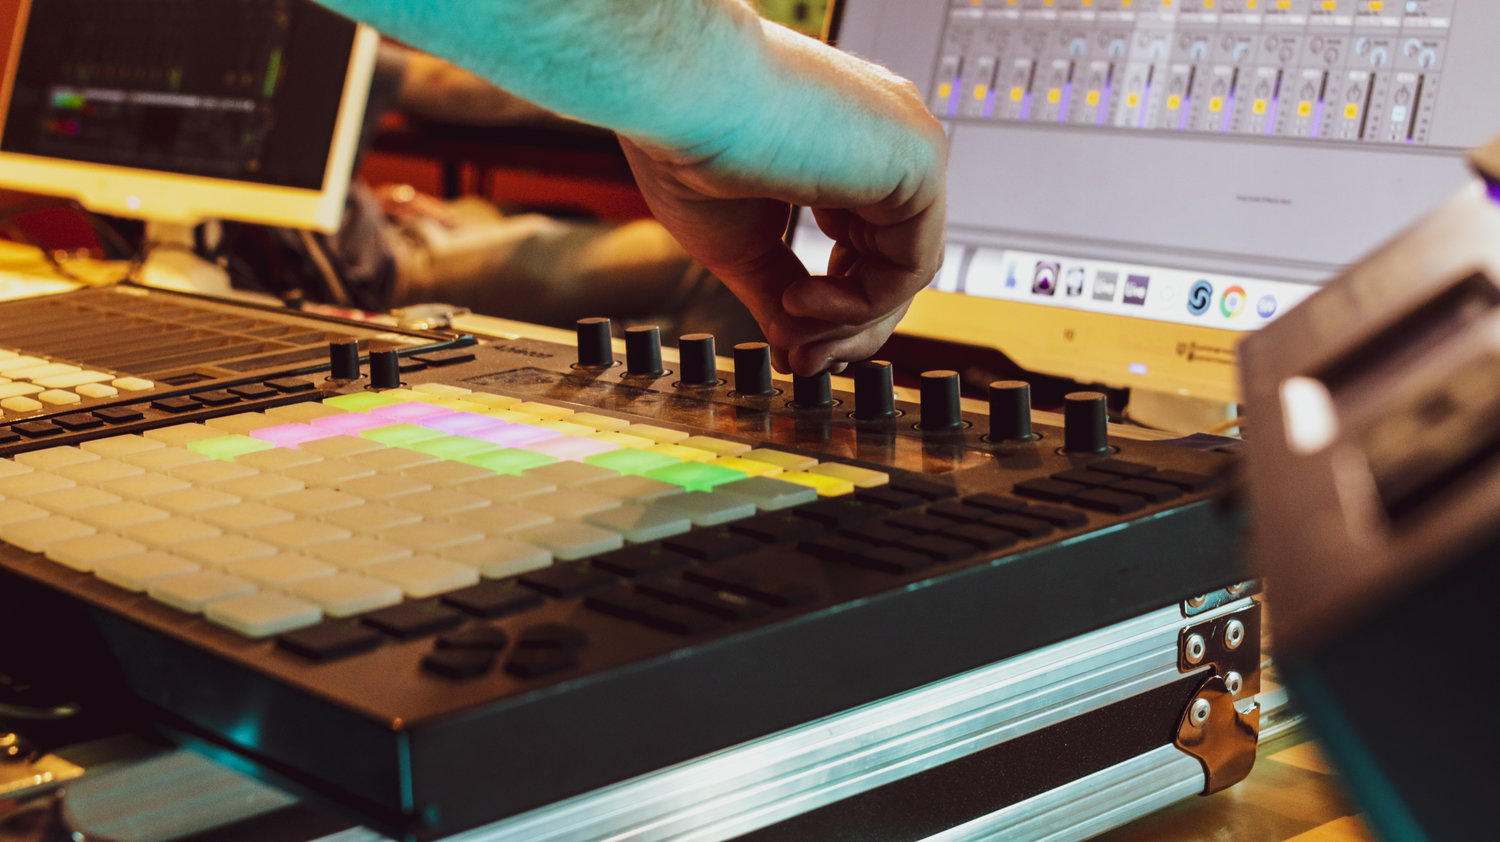 ABLETON NIGHT PROGRAM - A 16 WEEK ELECTRONIC MUSIC PRODUCTION COURSE FOR ASPIRING PRODUCERS